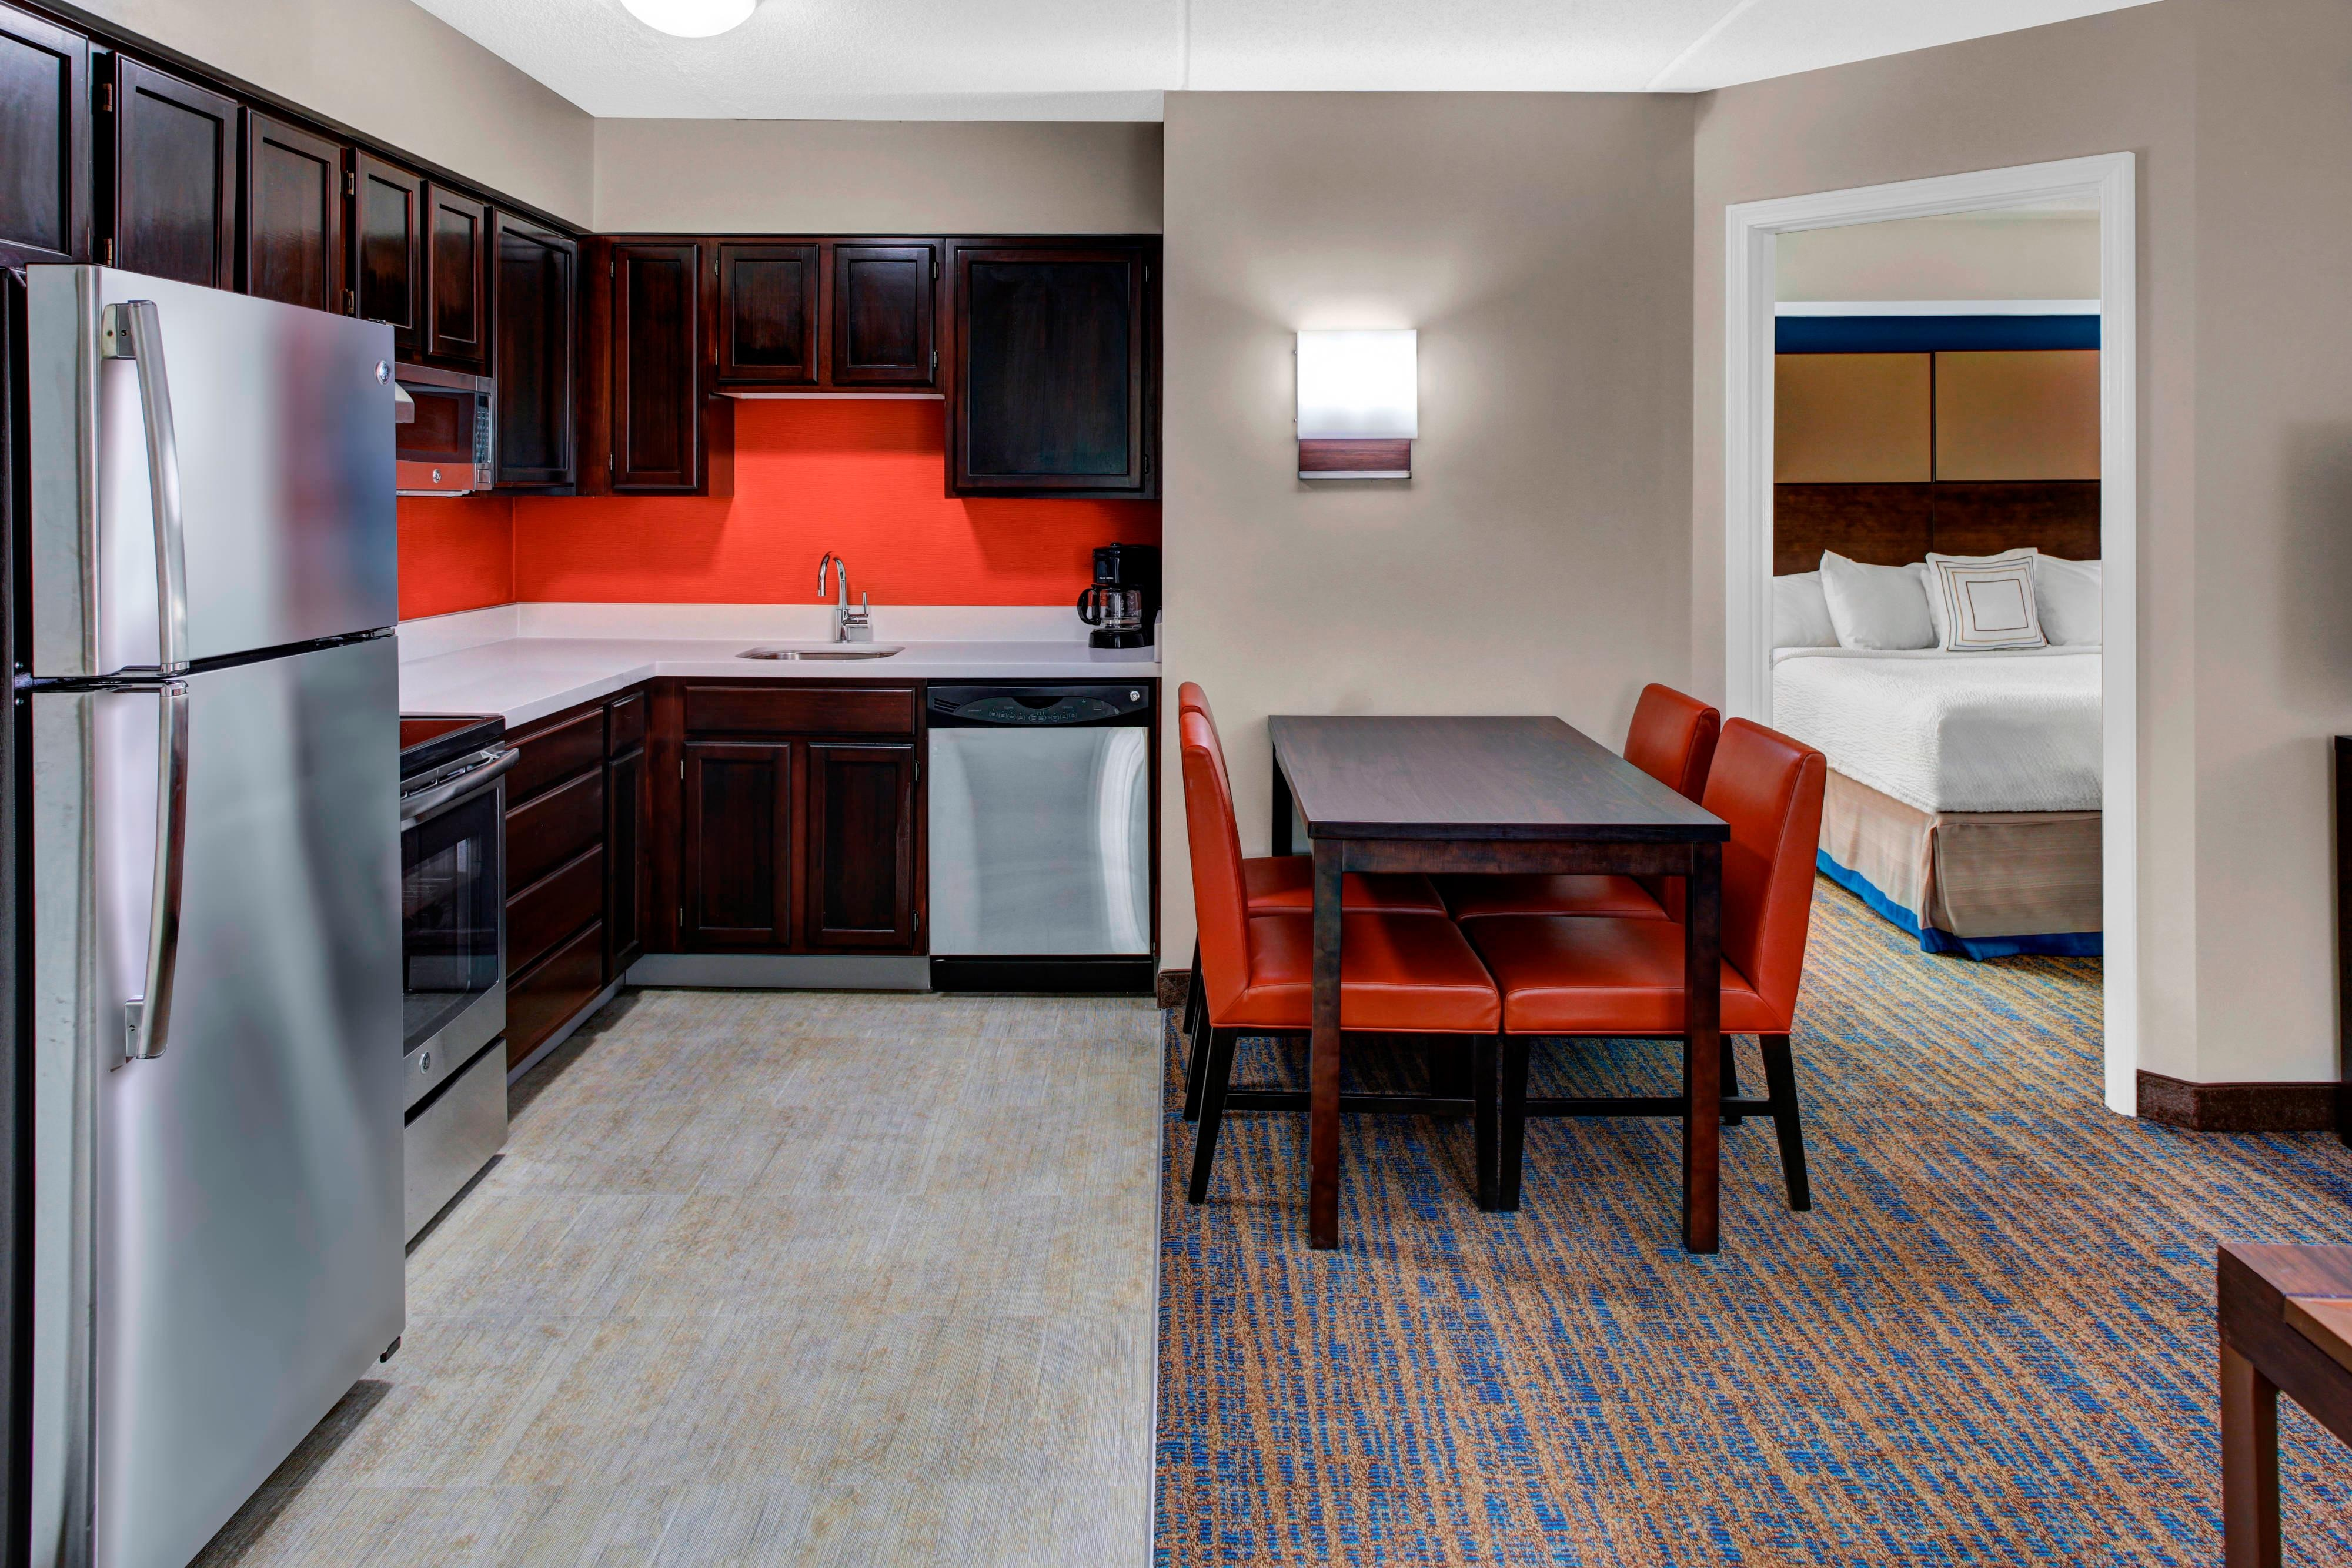 Residence Inn by Marriott Cleveland Beachwood Kitchen